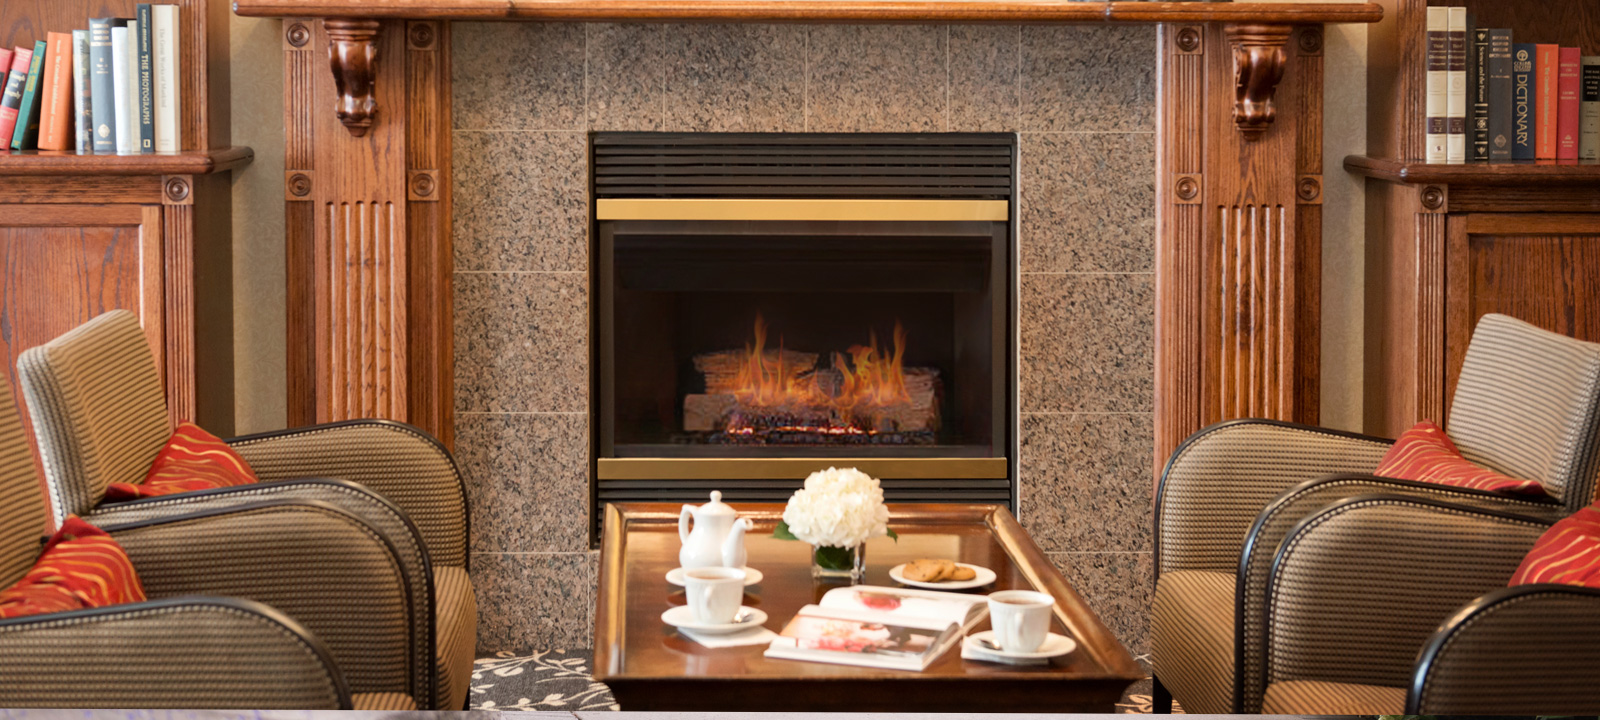 Fireplace lounge at Amica Bayview Village senior retirement residence.